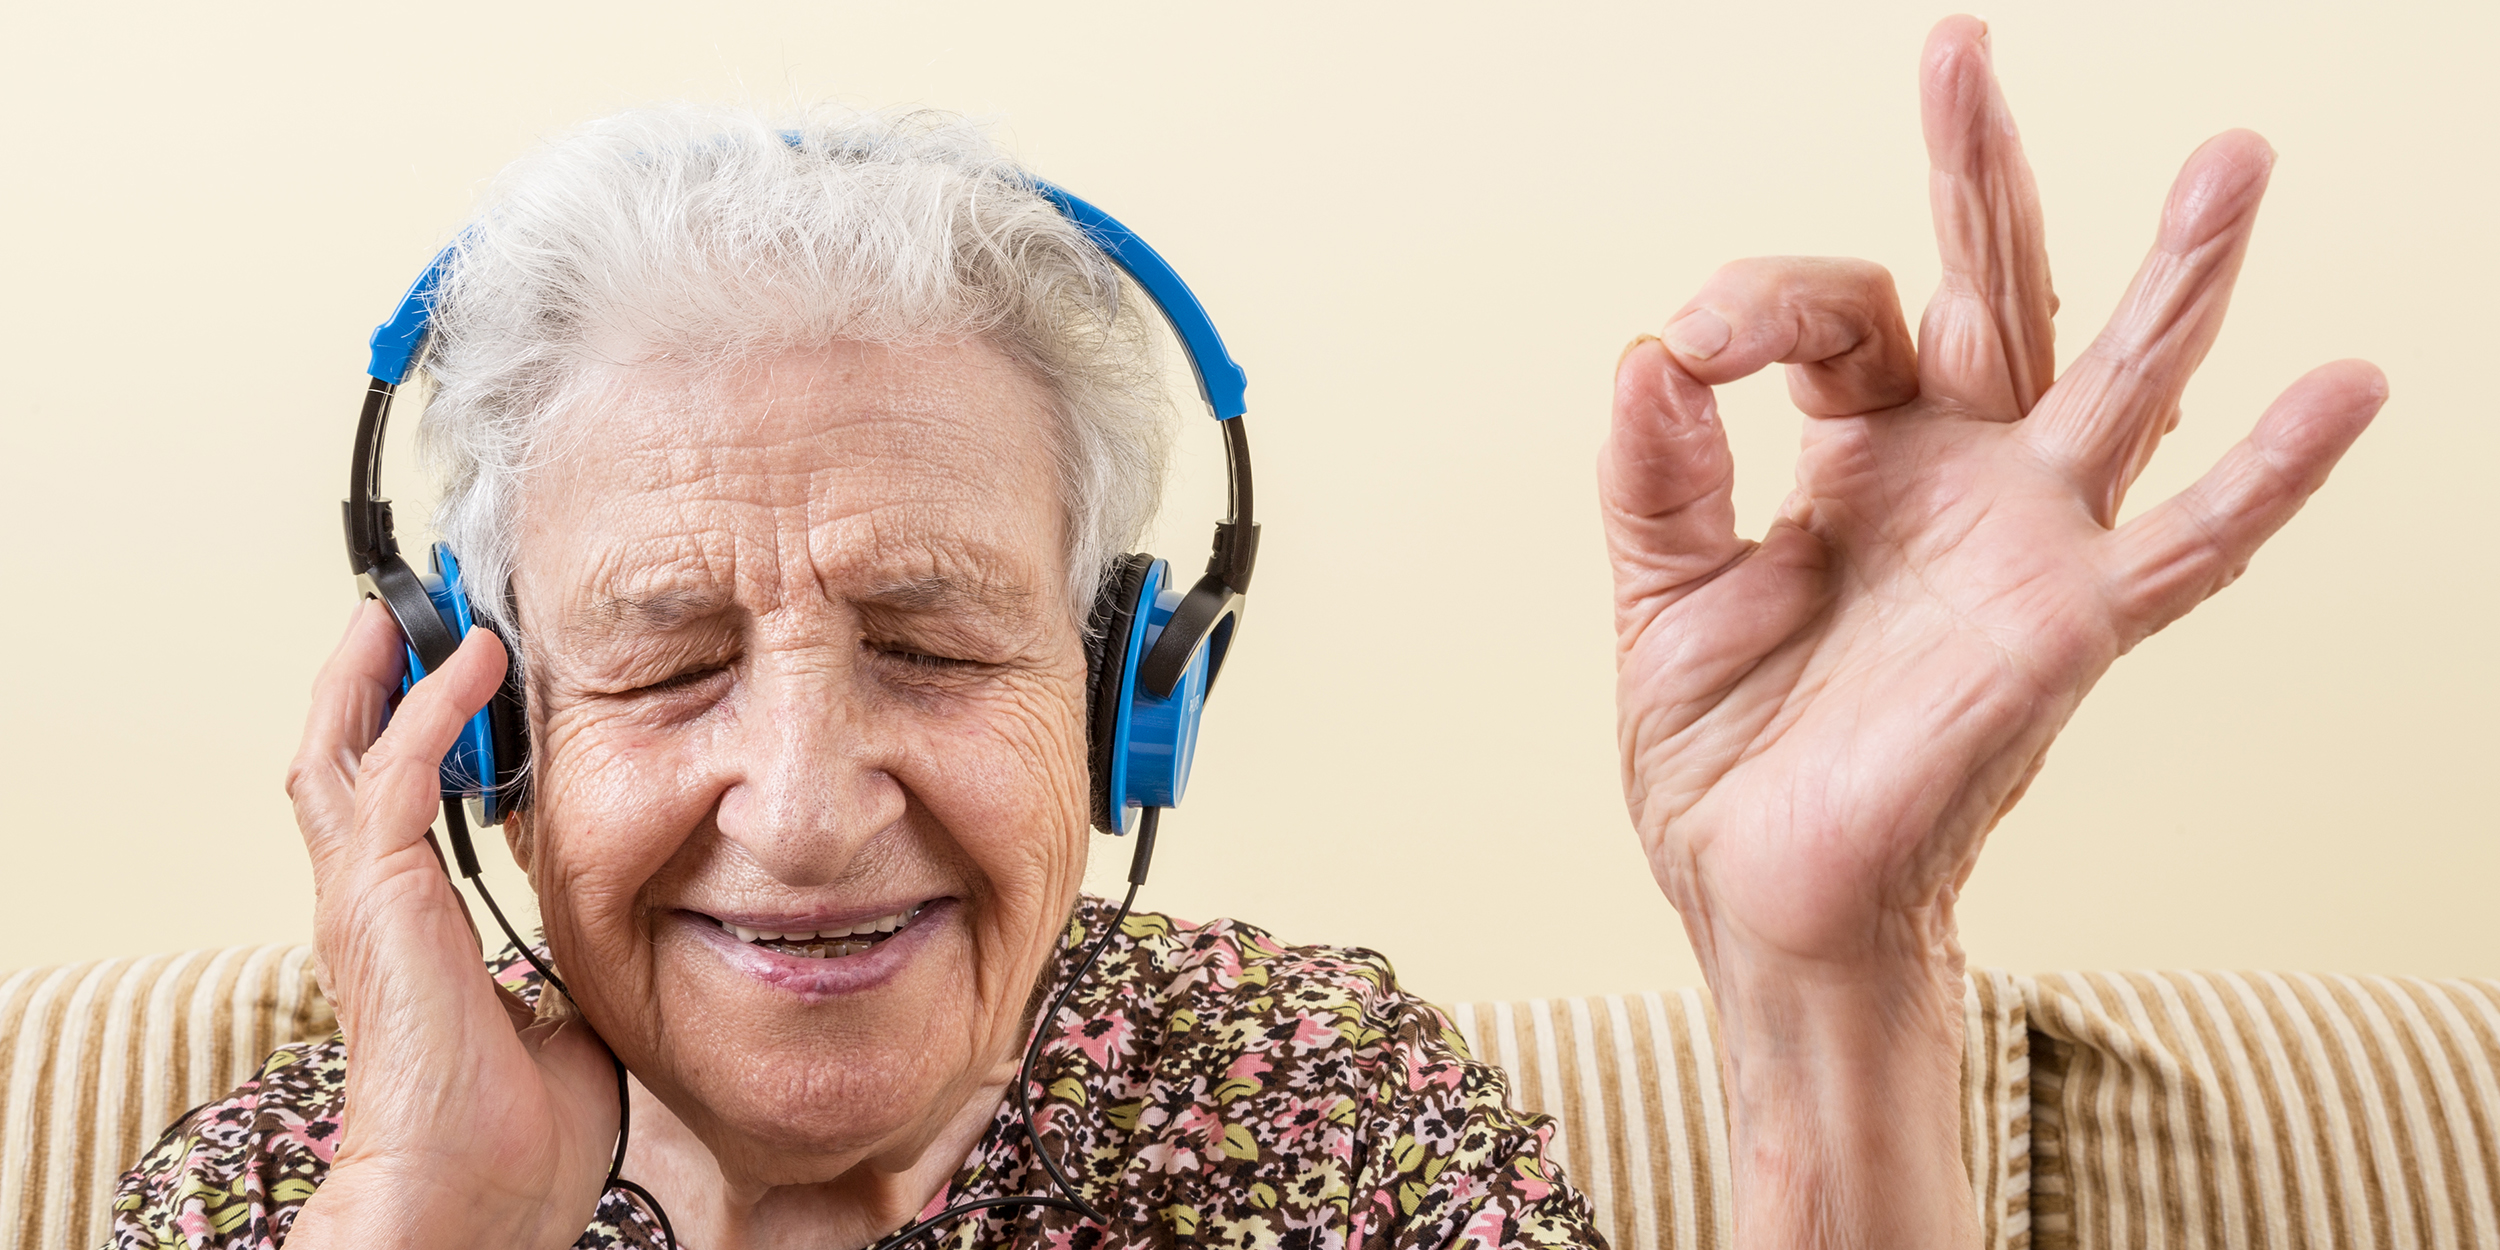 Listening to This Song Can Reduce Your Anxiety by 65, Says Science